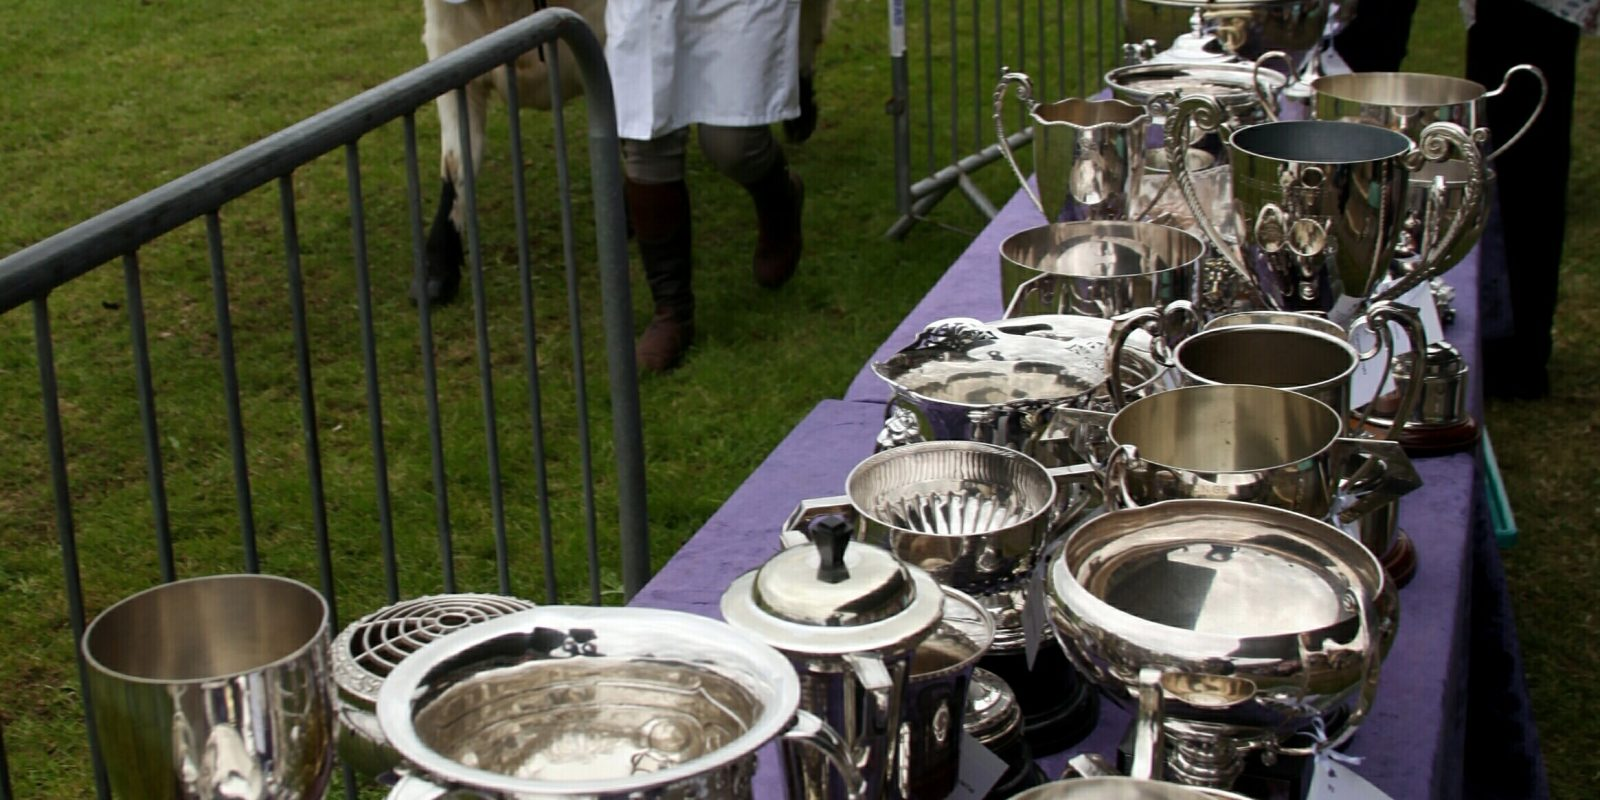 The parade makes its way past the fine display of trophies at Dumfries Show